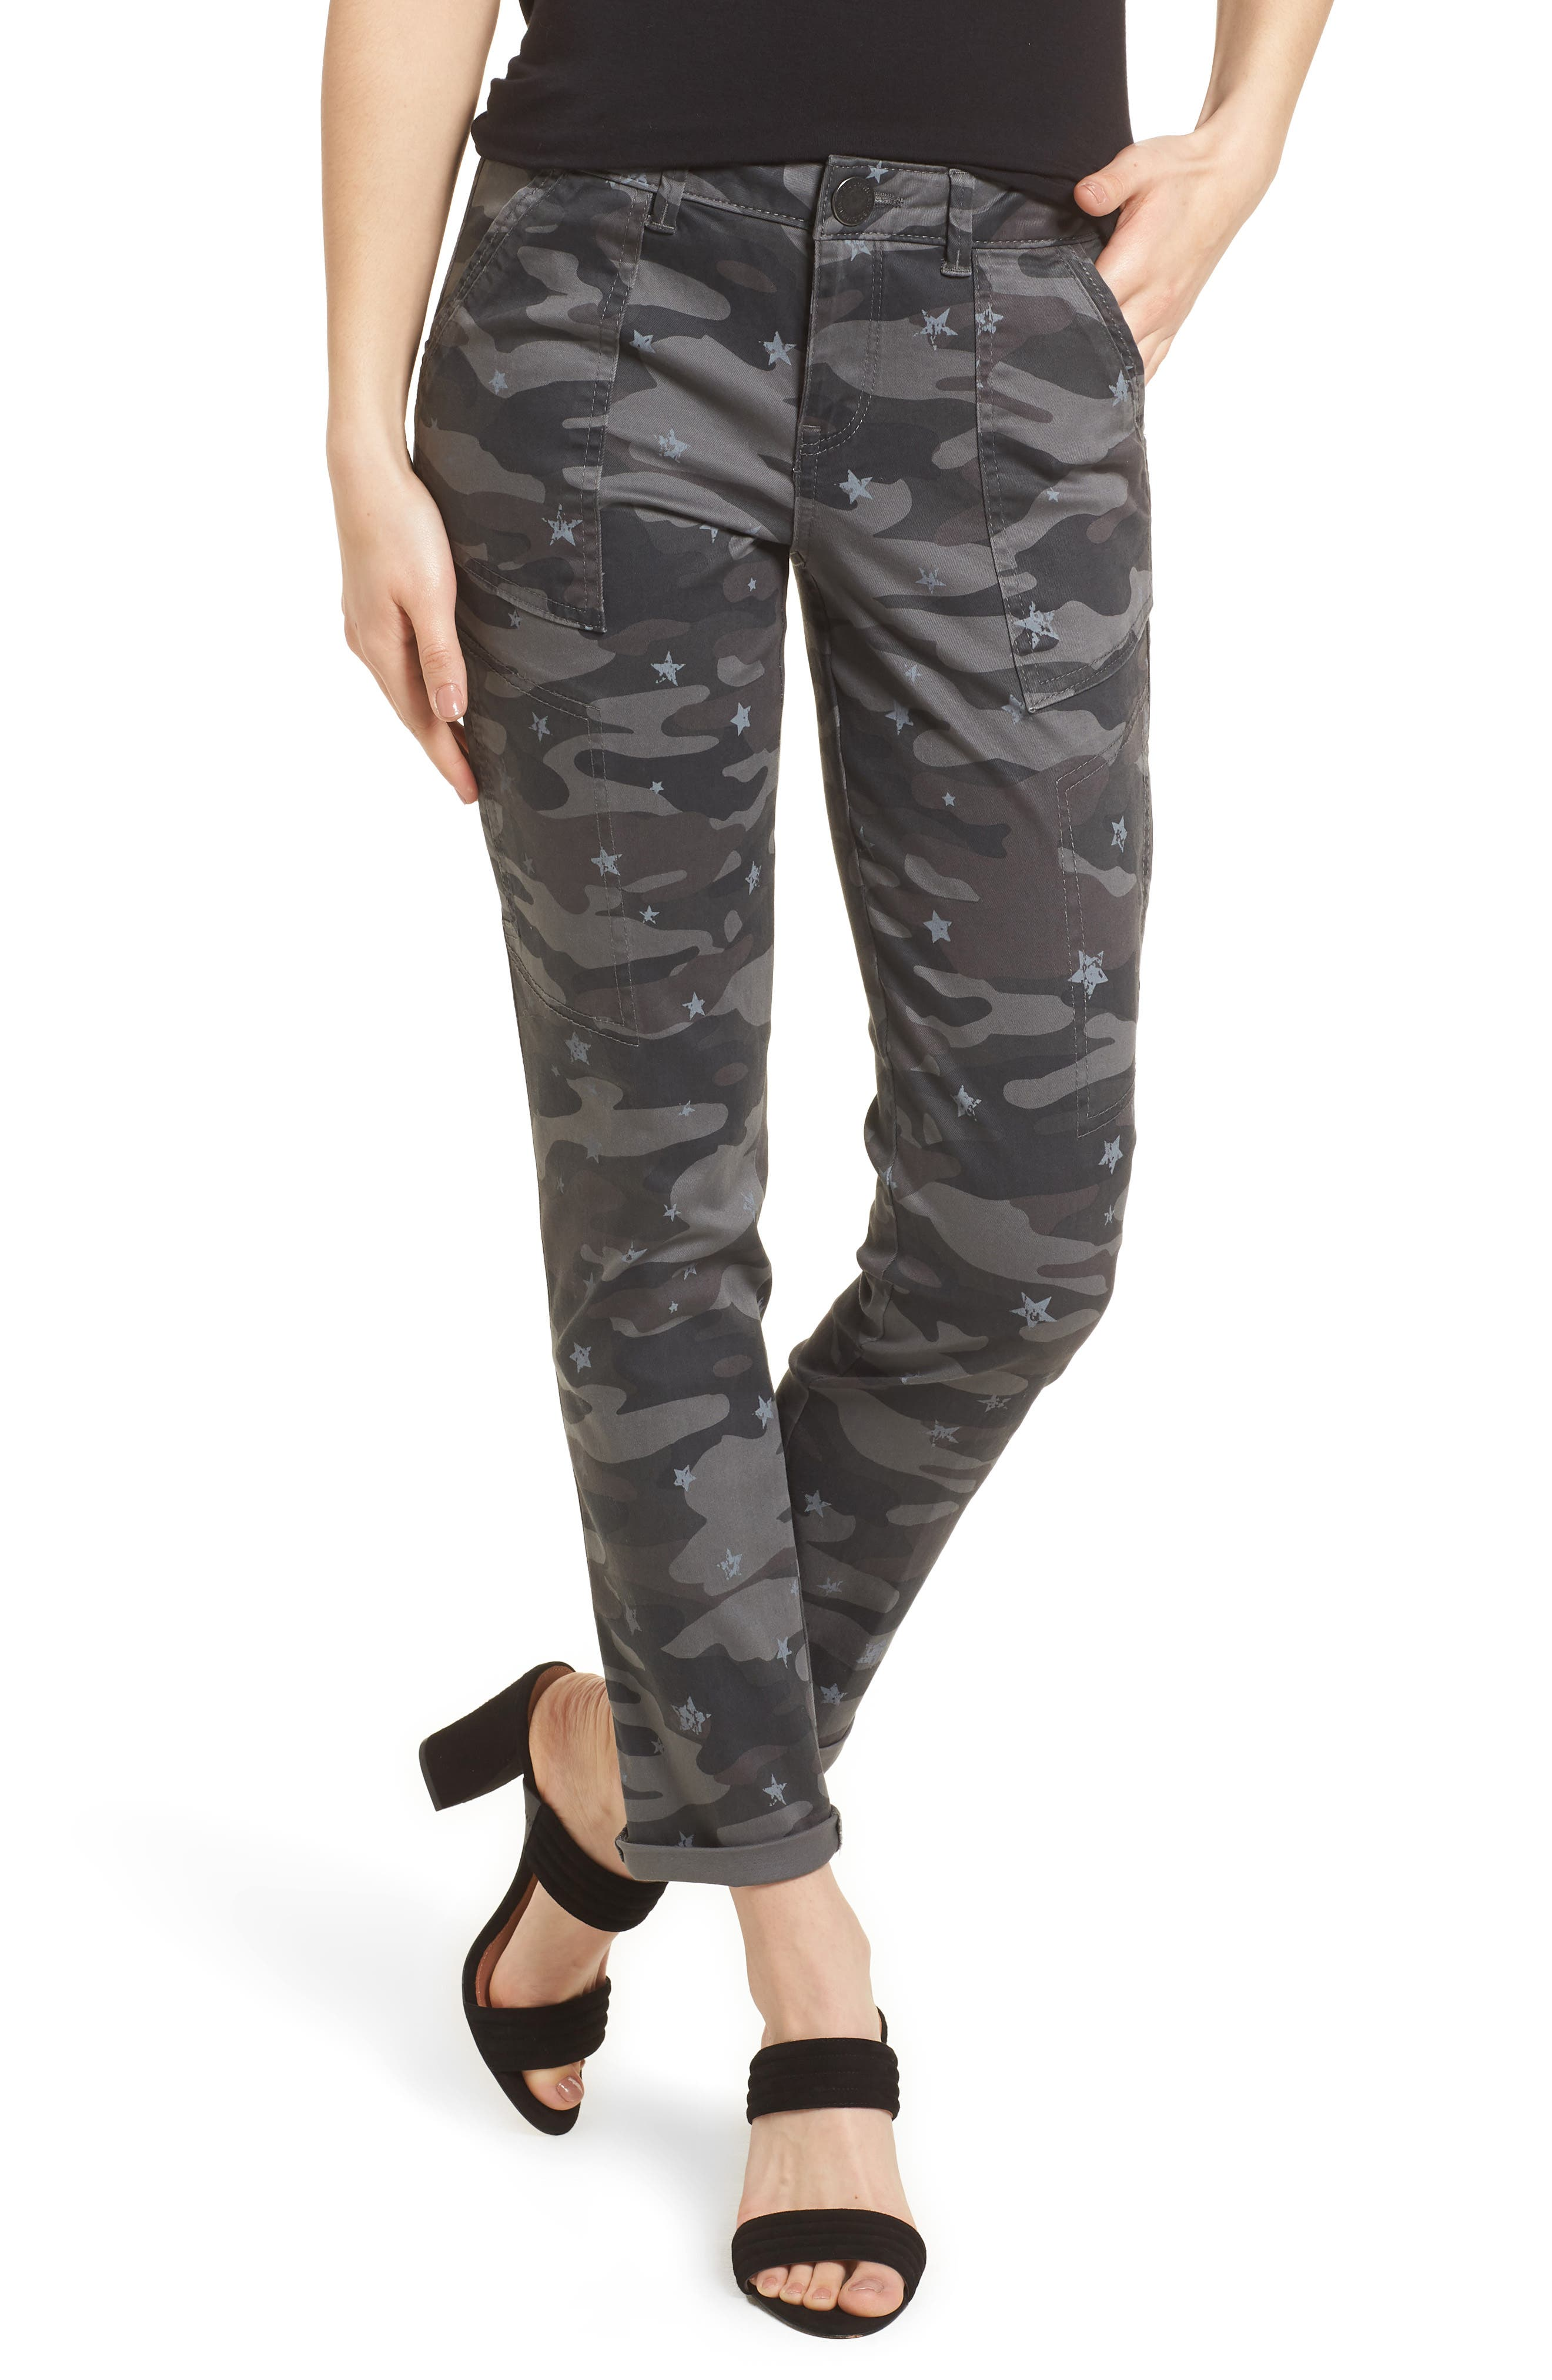 Twill Star Camo Cargo Pants,                             Main thumbnail 1, color,                             Cc- Charcoal